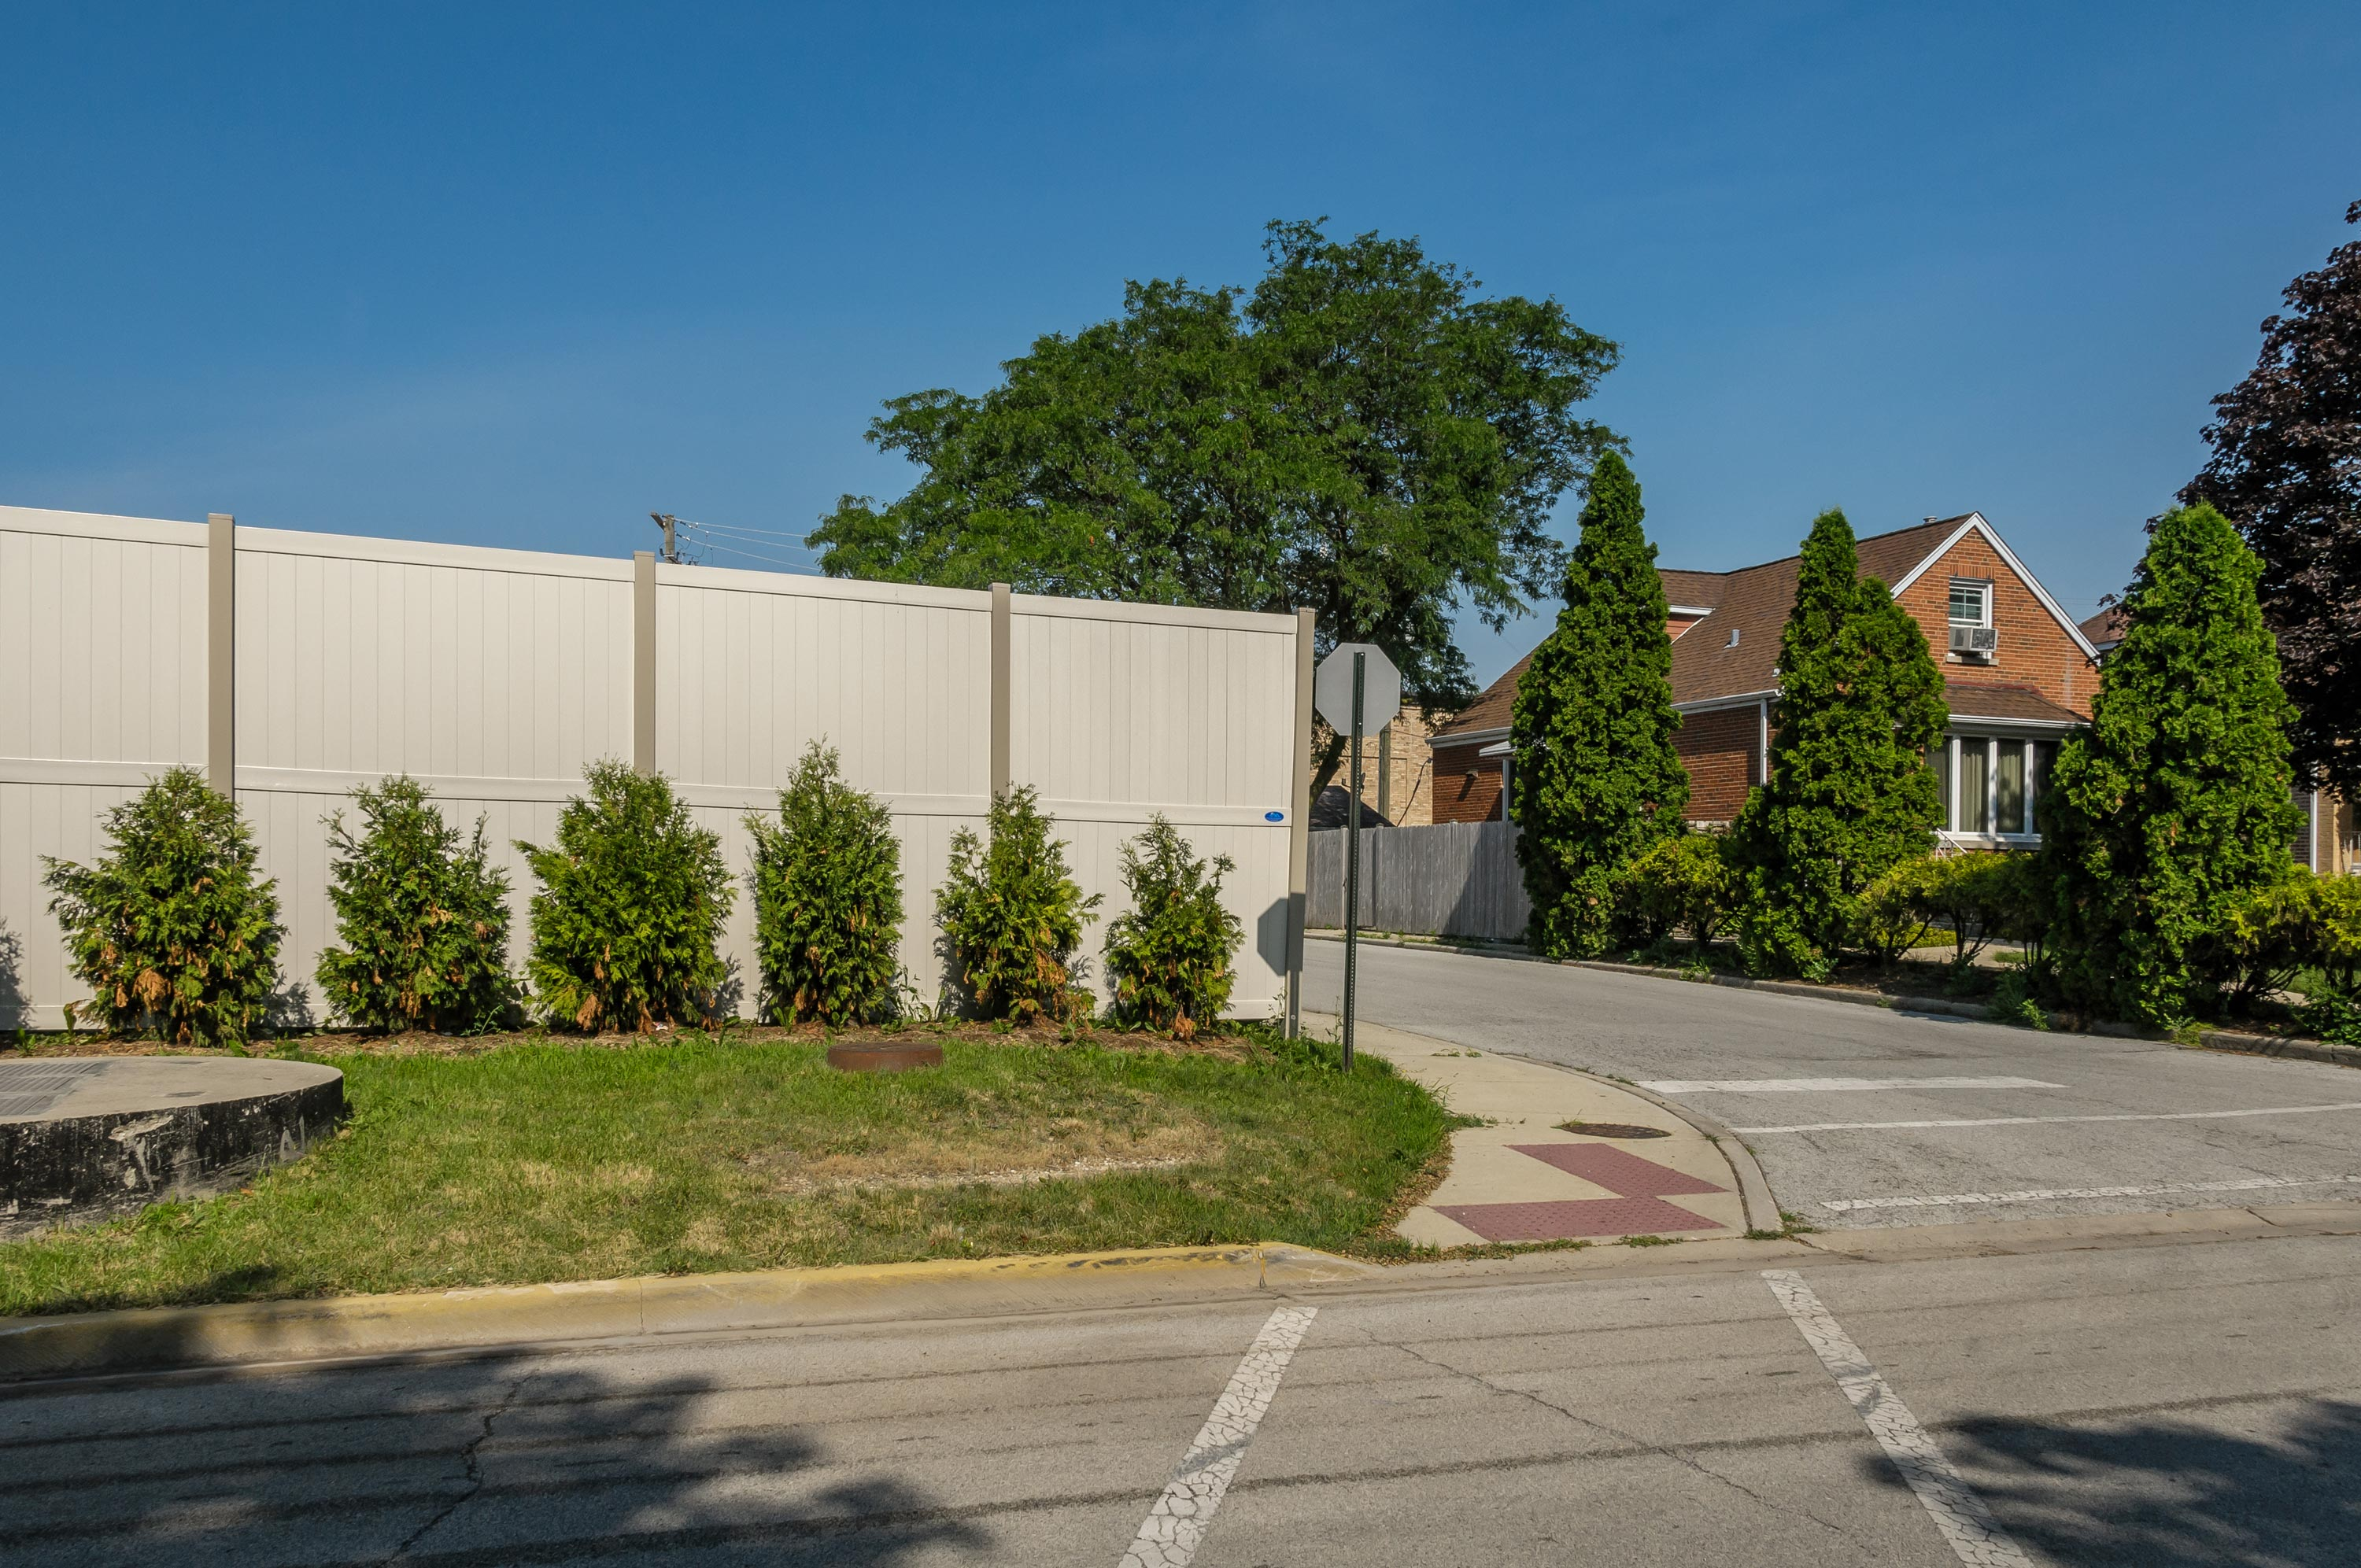 10' Rainer vinyl fence photo fence-8 installed around warehouse in River Grove, Illinois